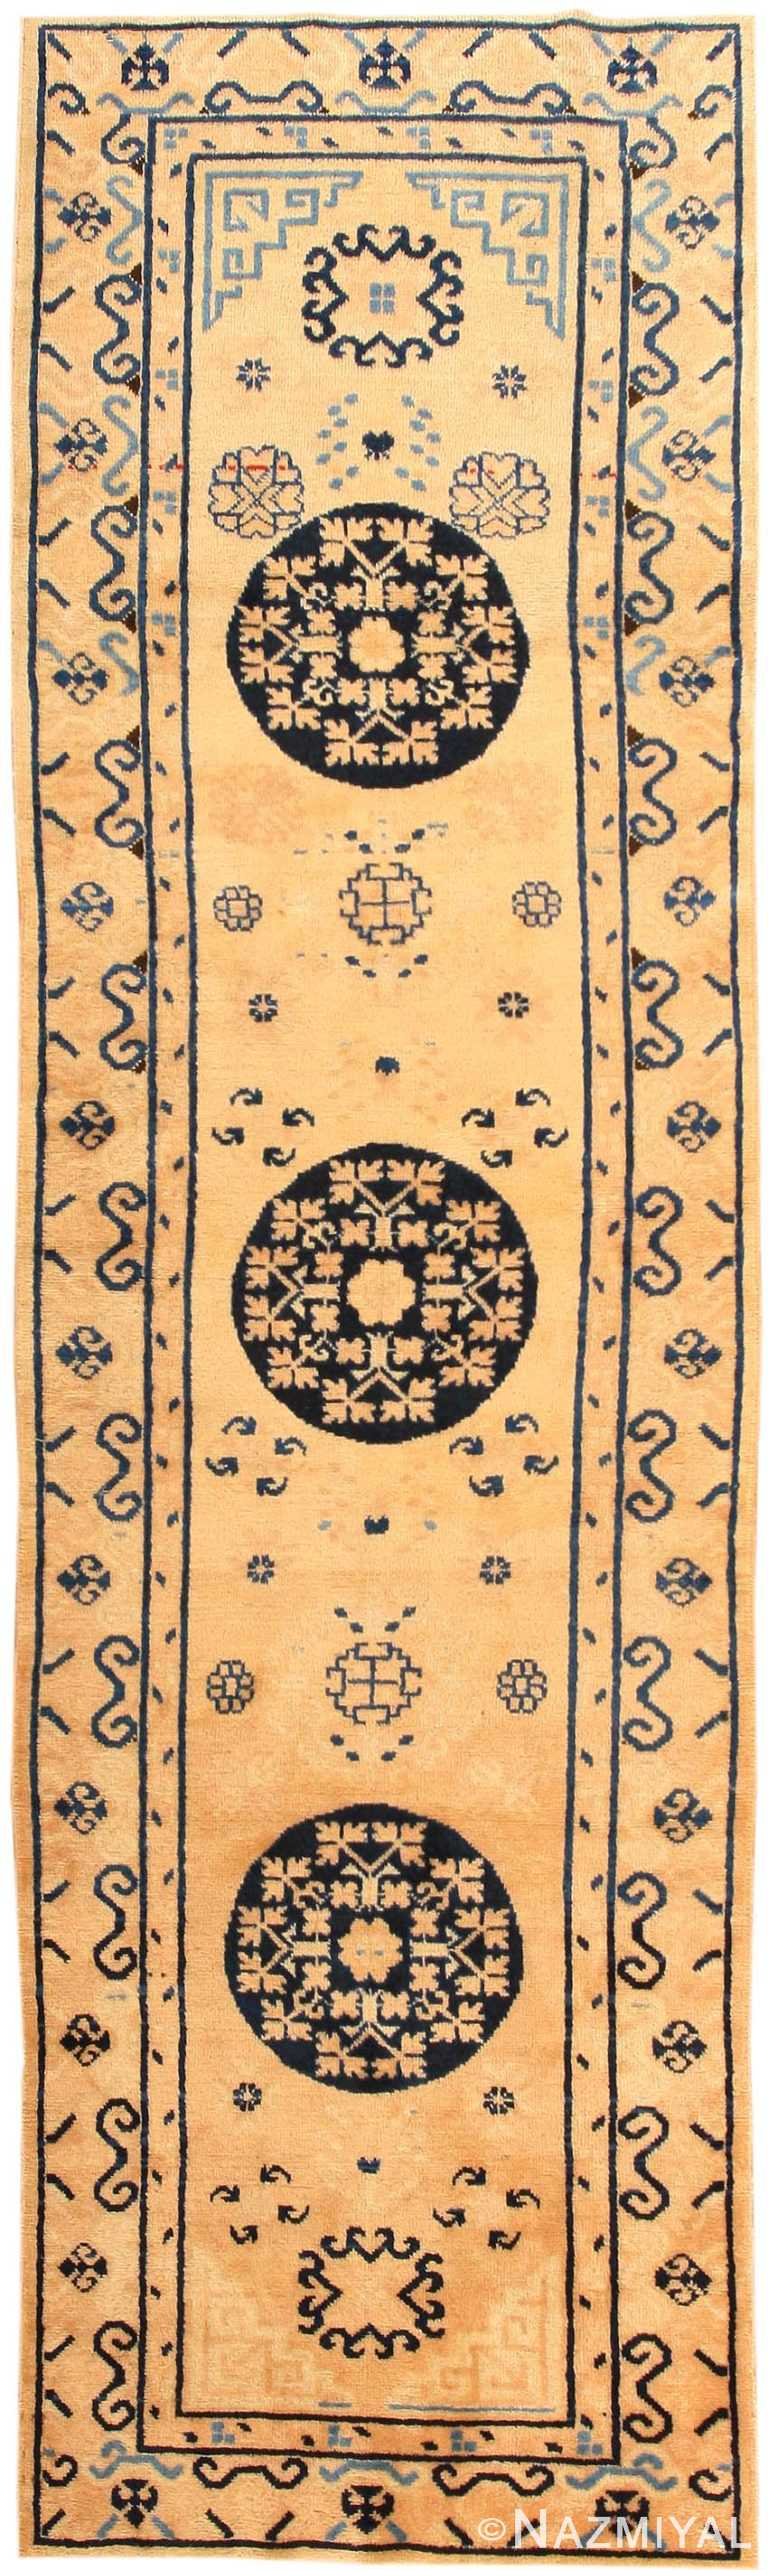 Antique Khotan Oriental Carpet 42193 Nazmiyal